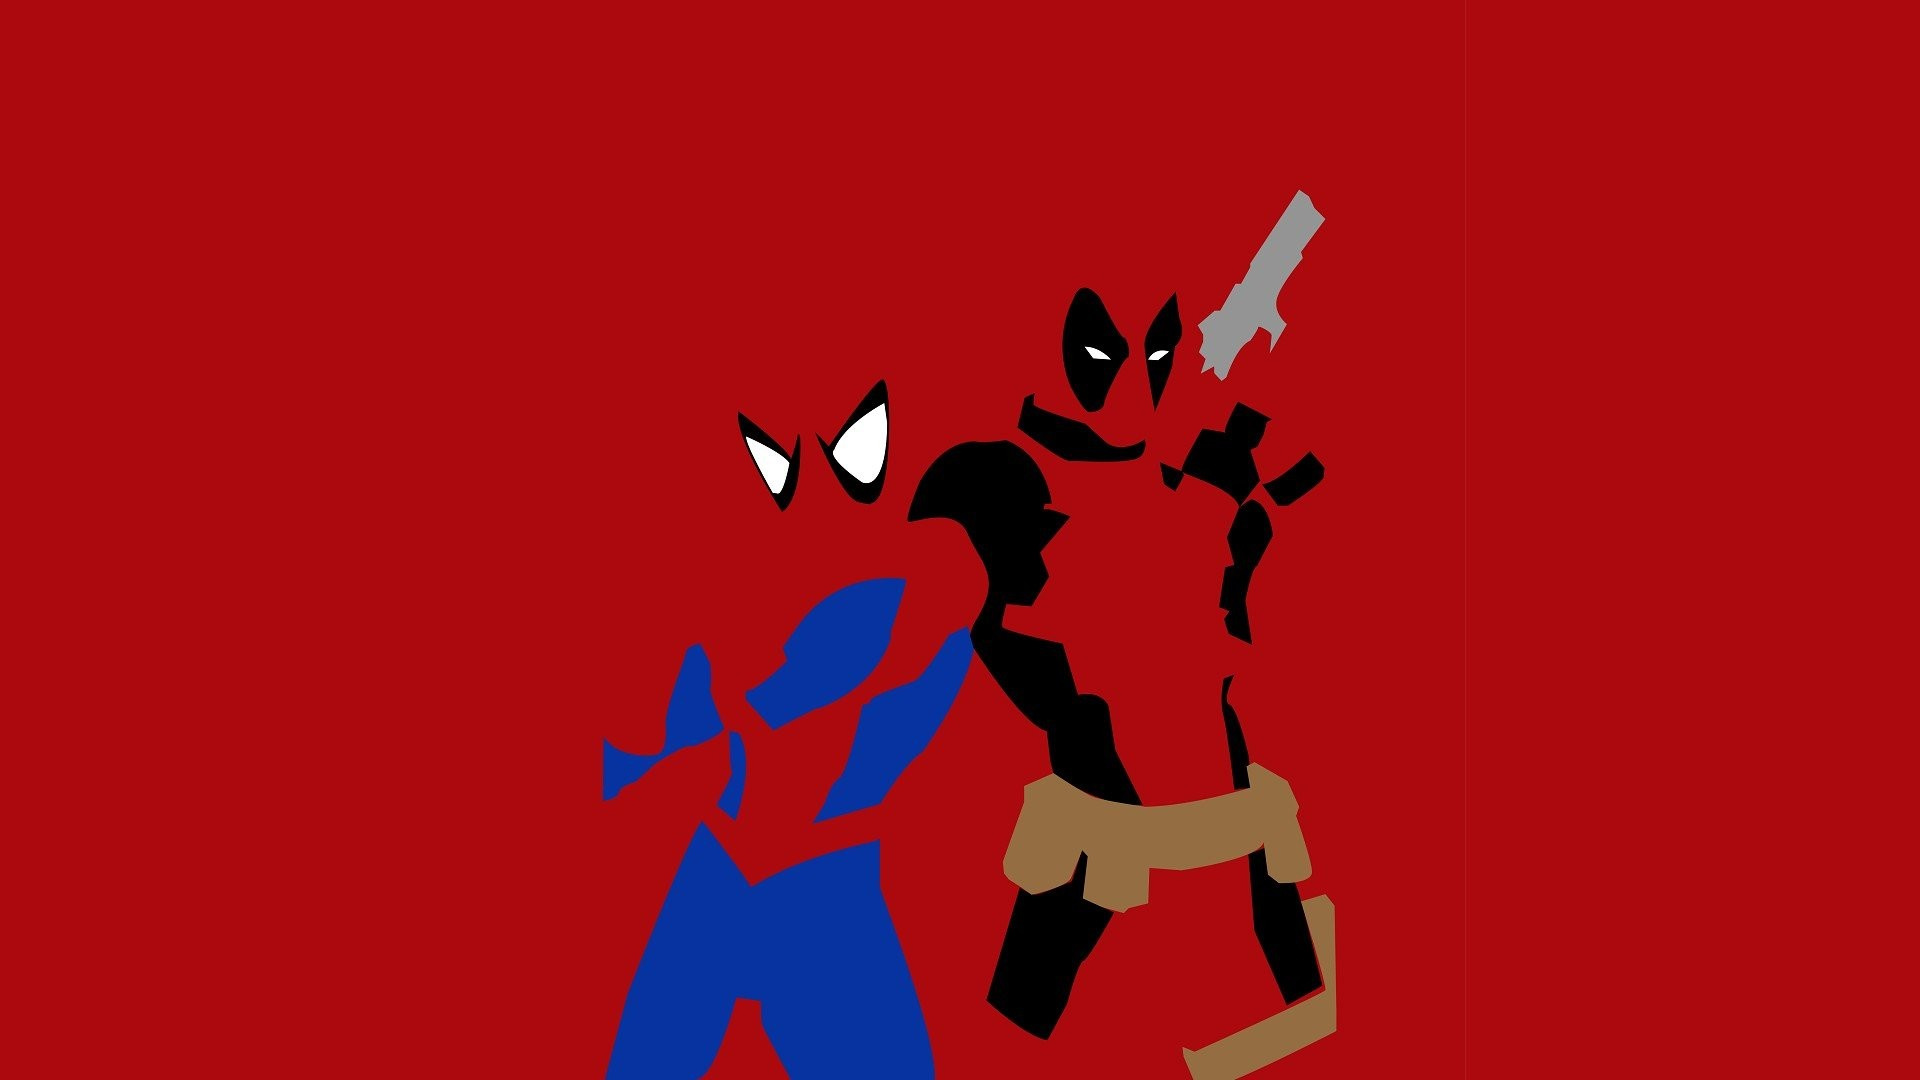 Res: 1920x1080, Spiderman And Deadpool Wallpapers For Iphone